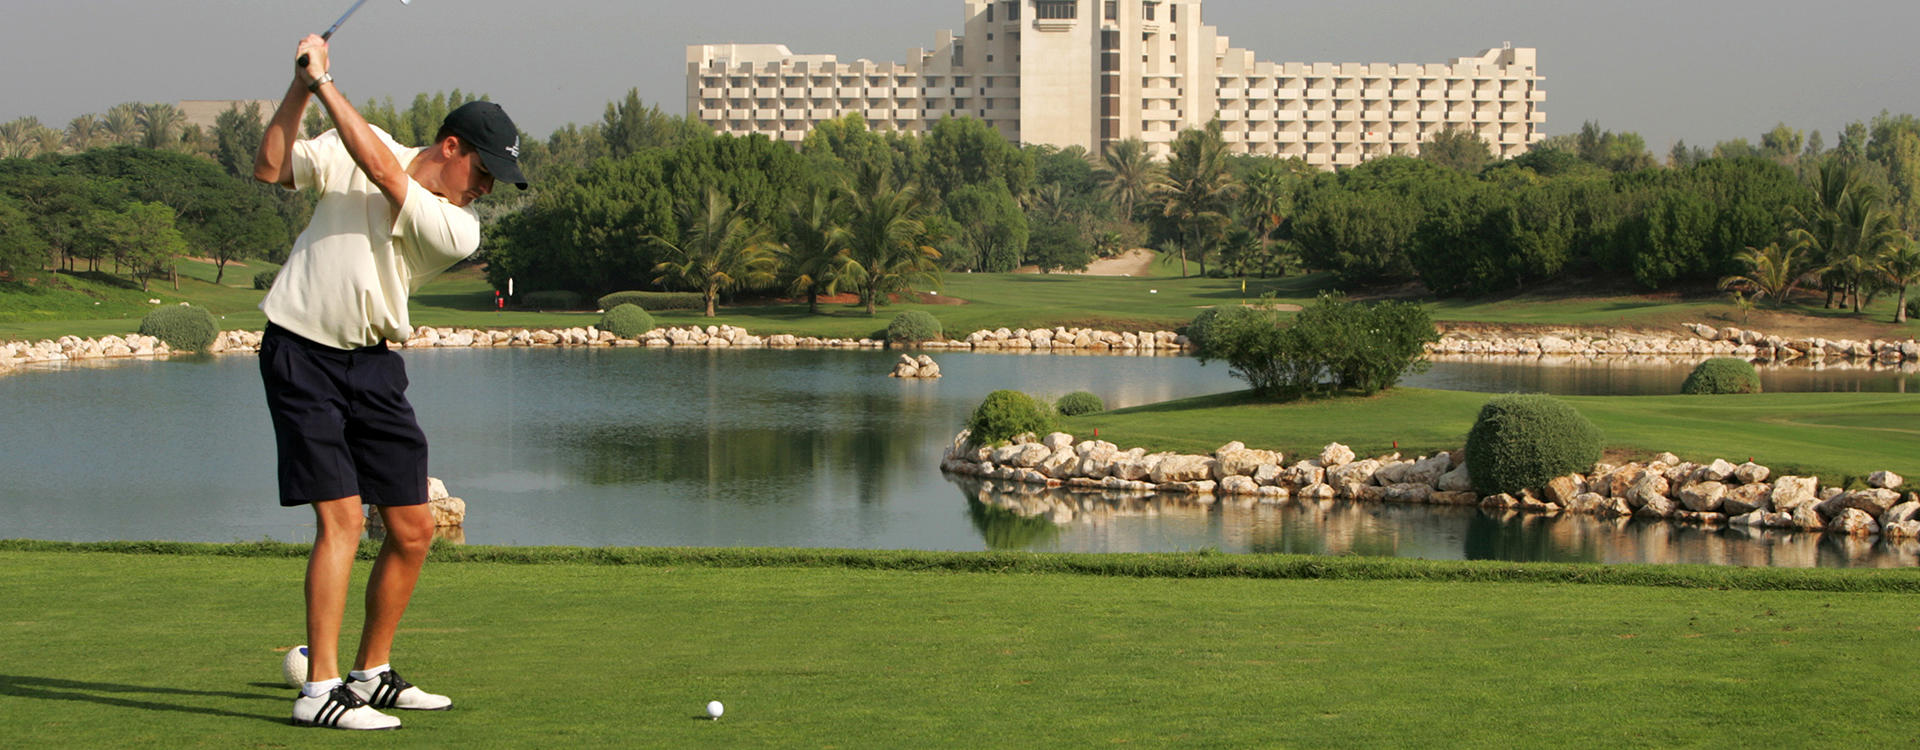 JA-Oasis-Beach_9-Hole-Golf